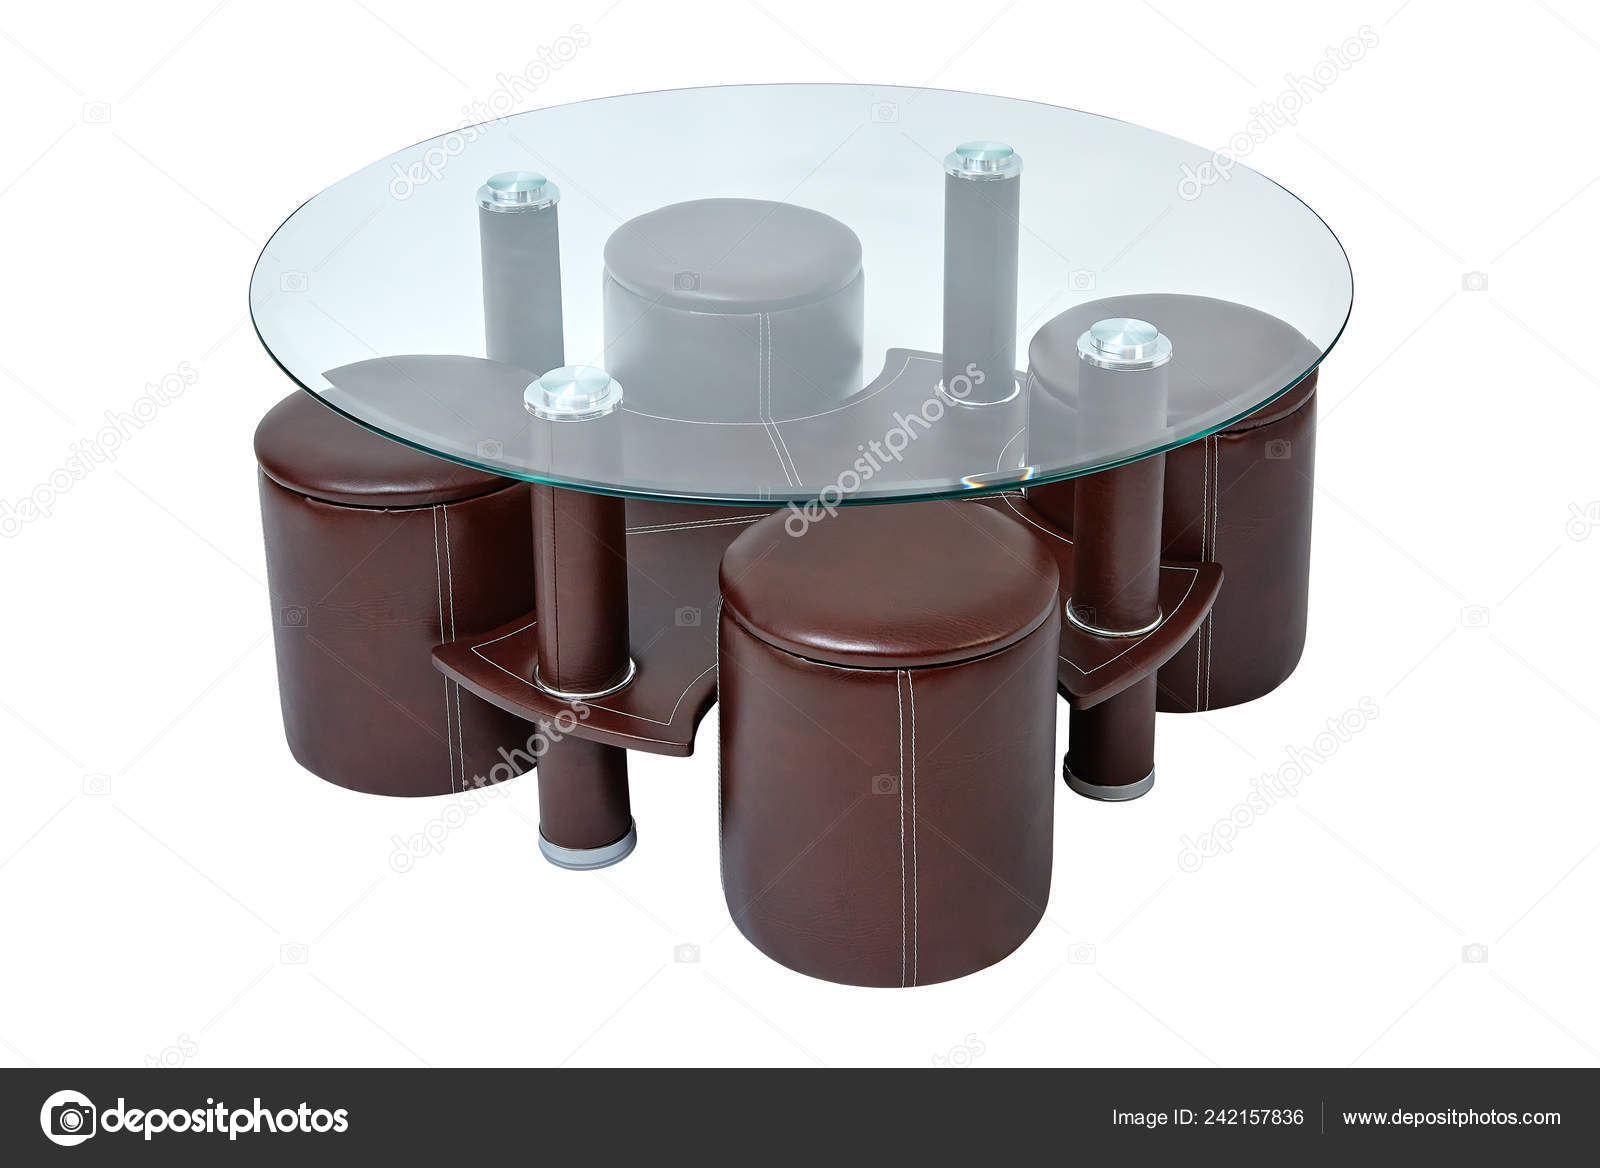 Luxury Coffee Table Stools Glass Brown Leather Coffe Table Four Stock Photo C Arthur Mustafa 242157836